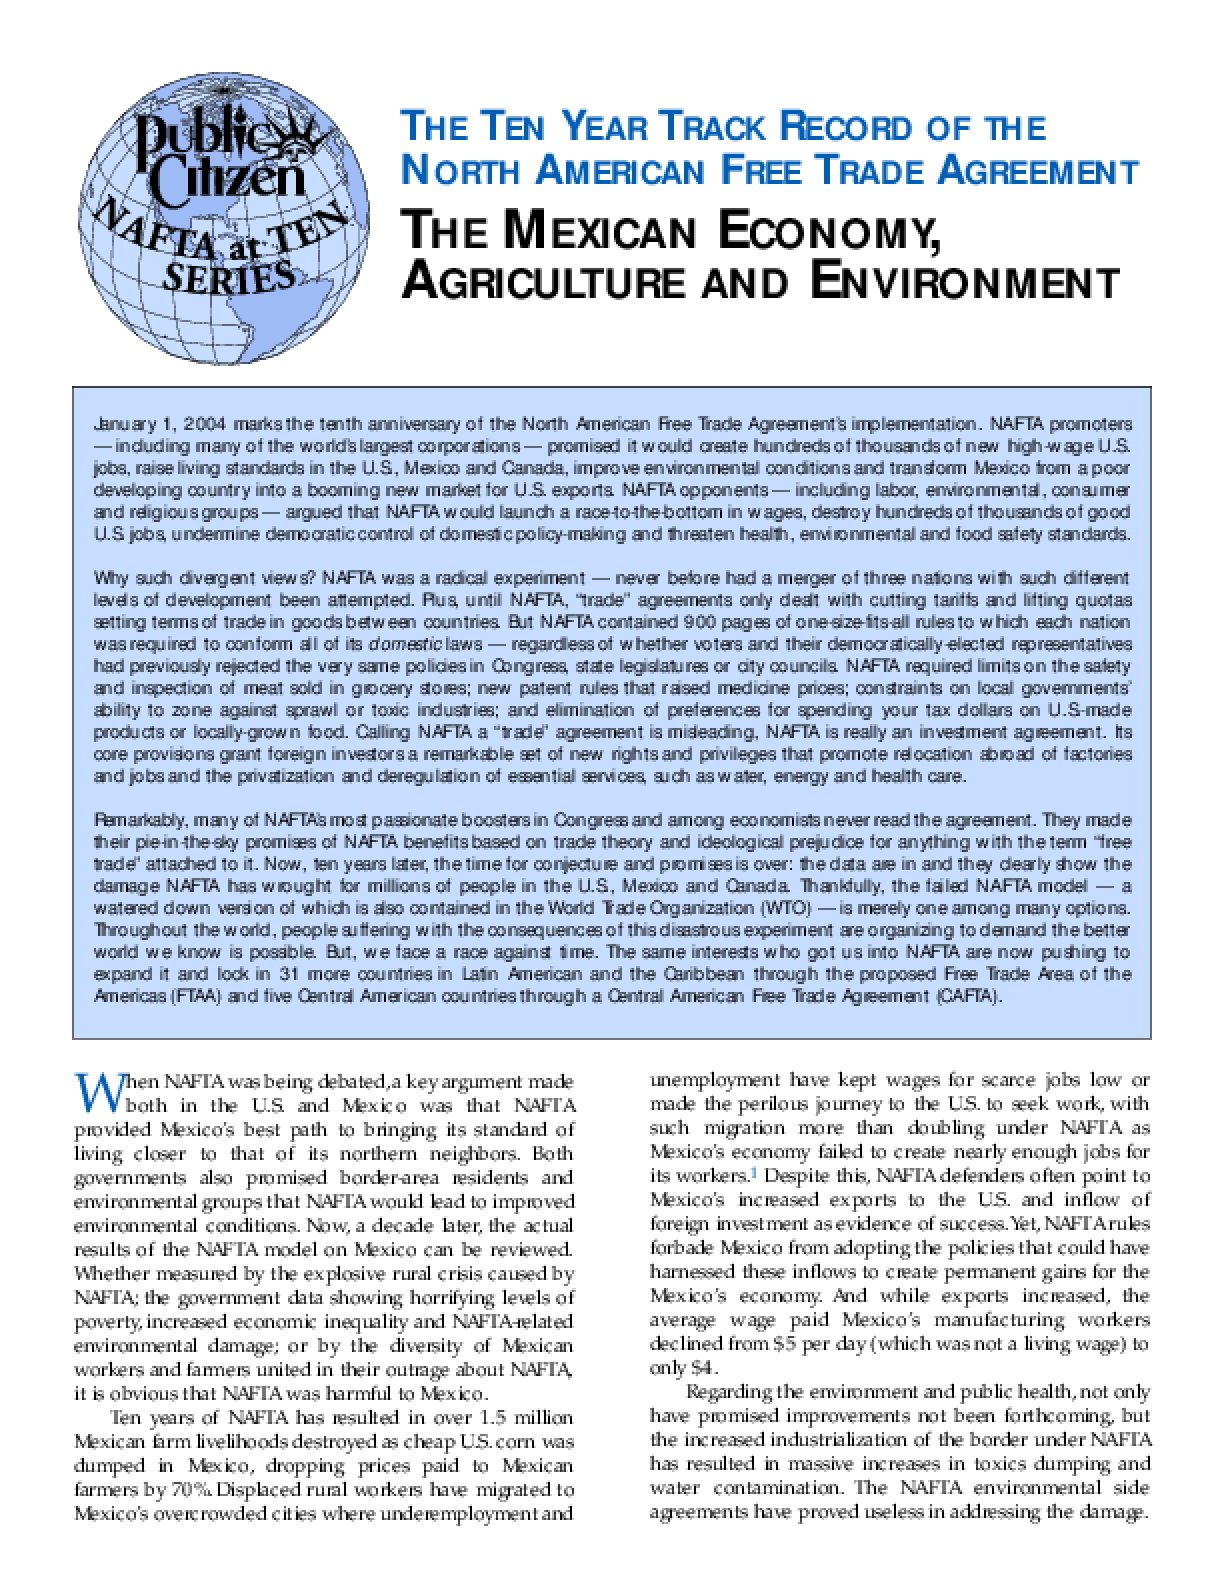 The Ten Year Track Record of the North American Free Trade Agreement: The Mexican Economy, Agriculture and Environment